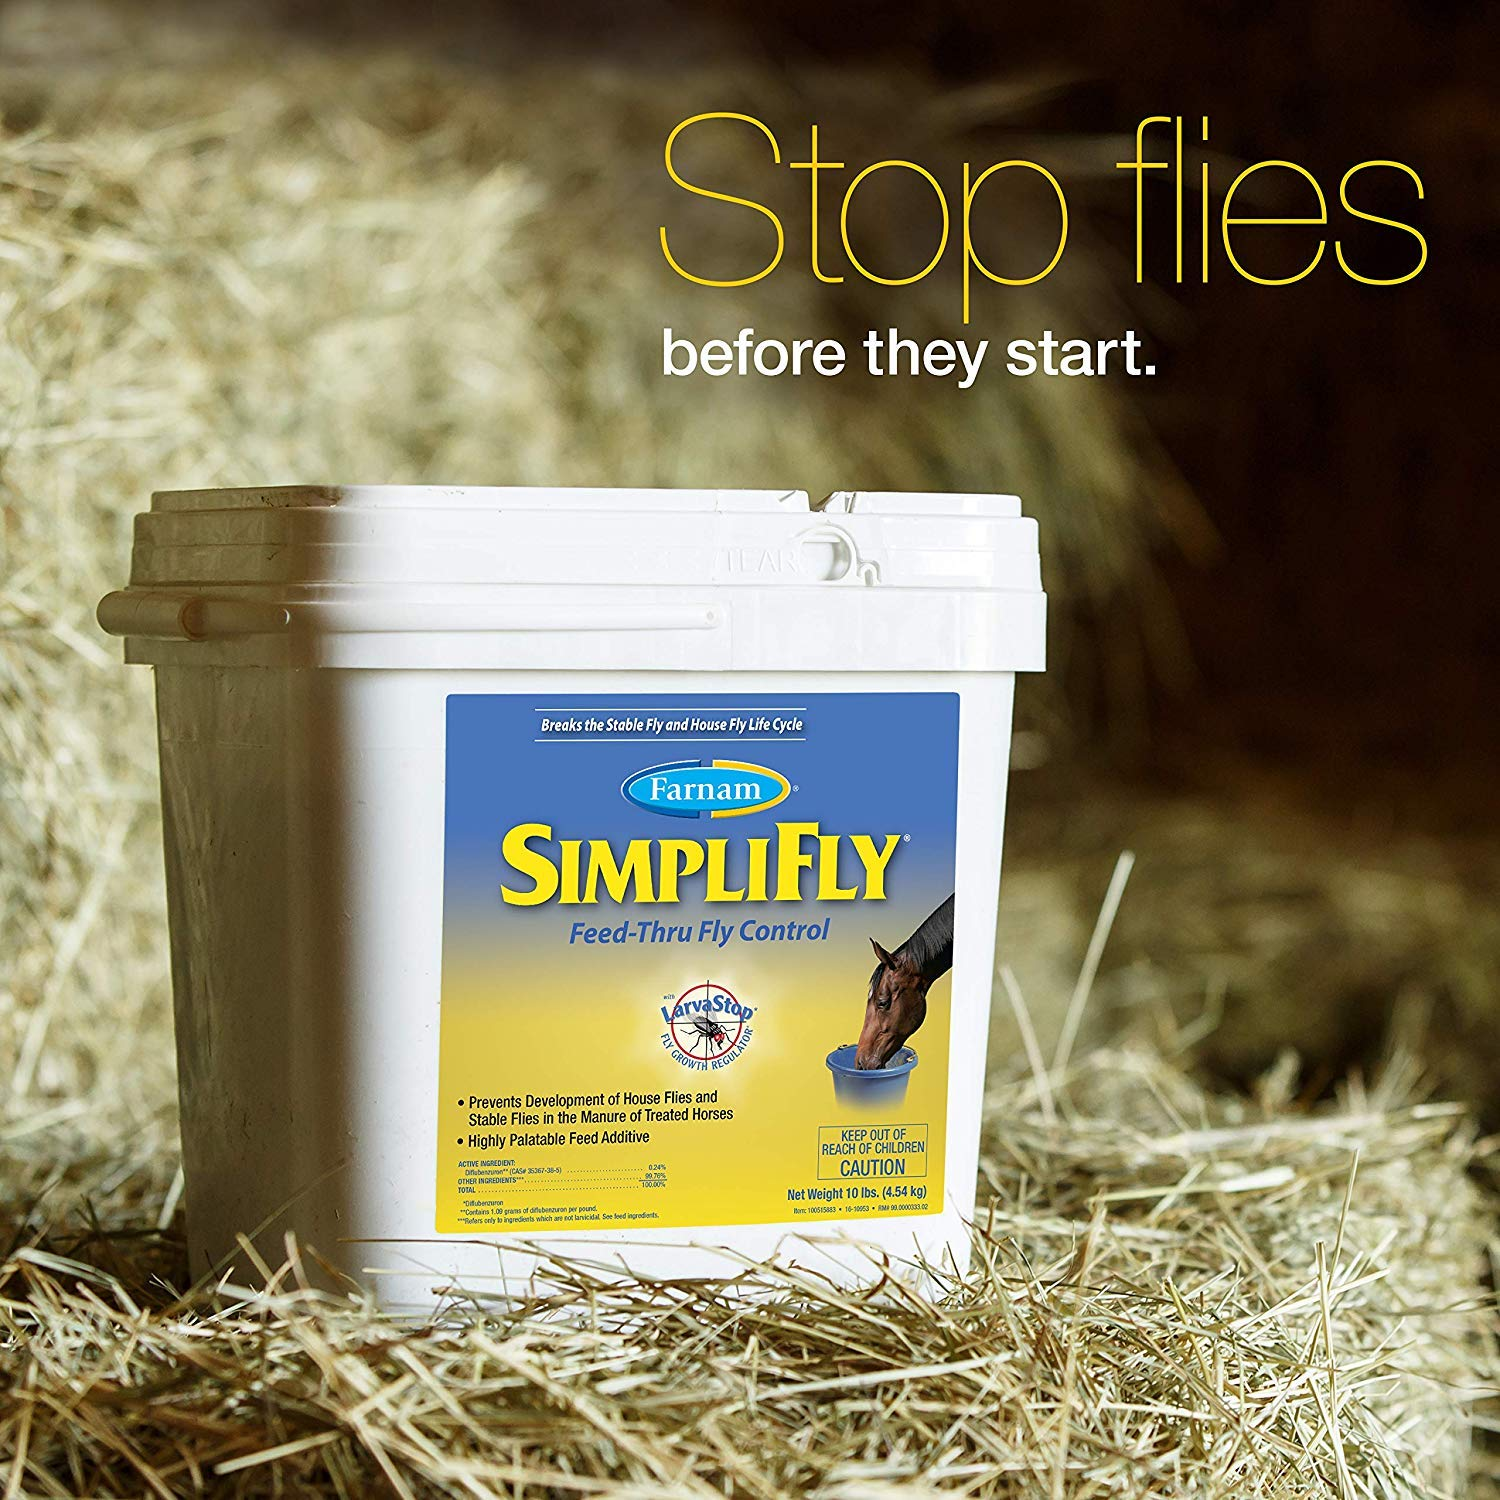 Farnam SimpliFly Feed-Thru Fly Control for Horses, Breaks and Prevents the Fly Life Cycle, 10 pound by Farnam (Image #1)